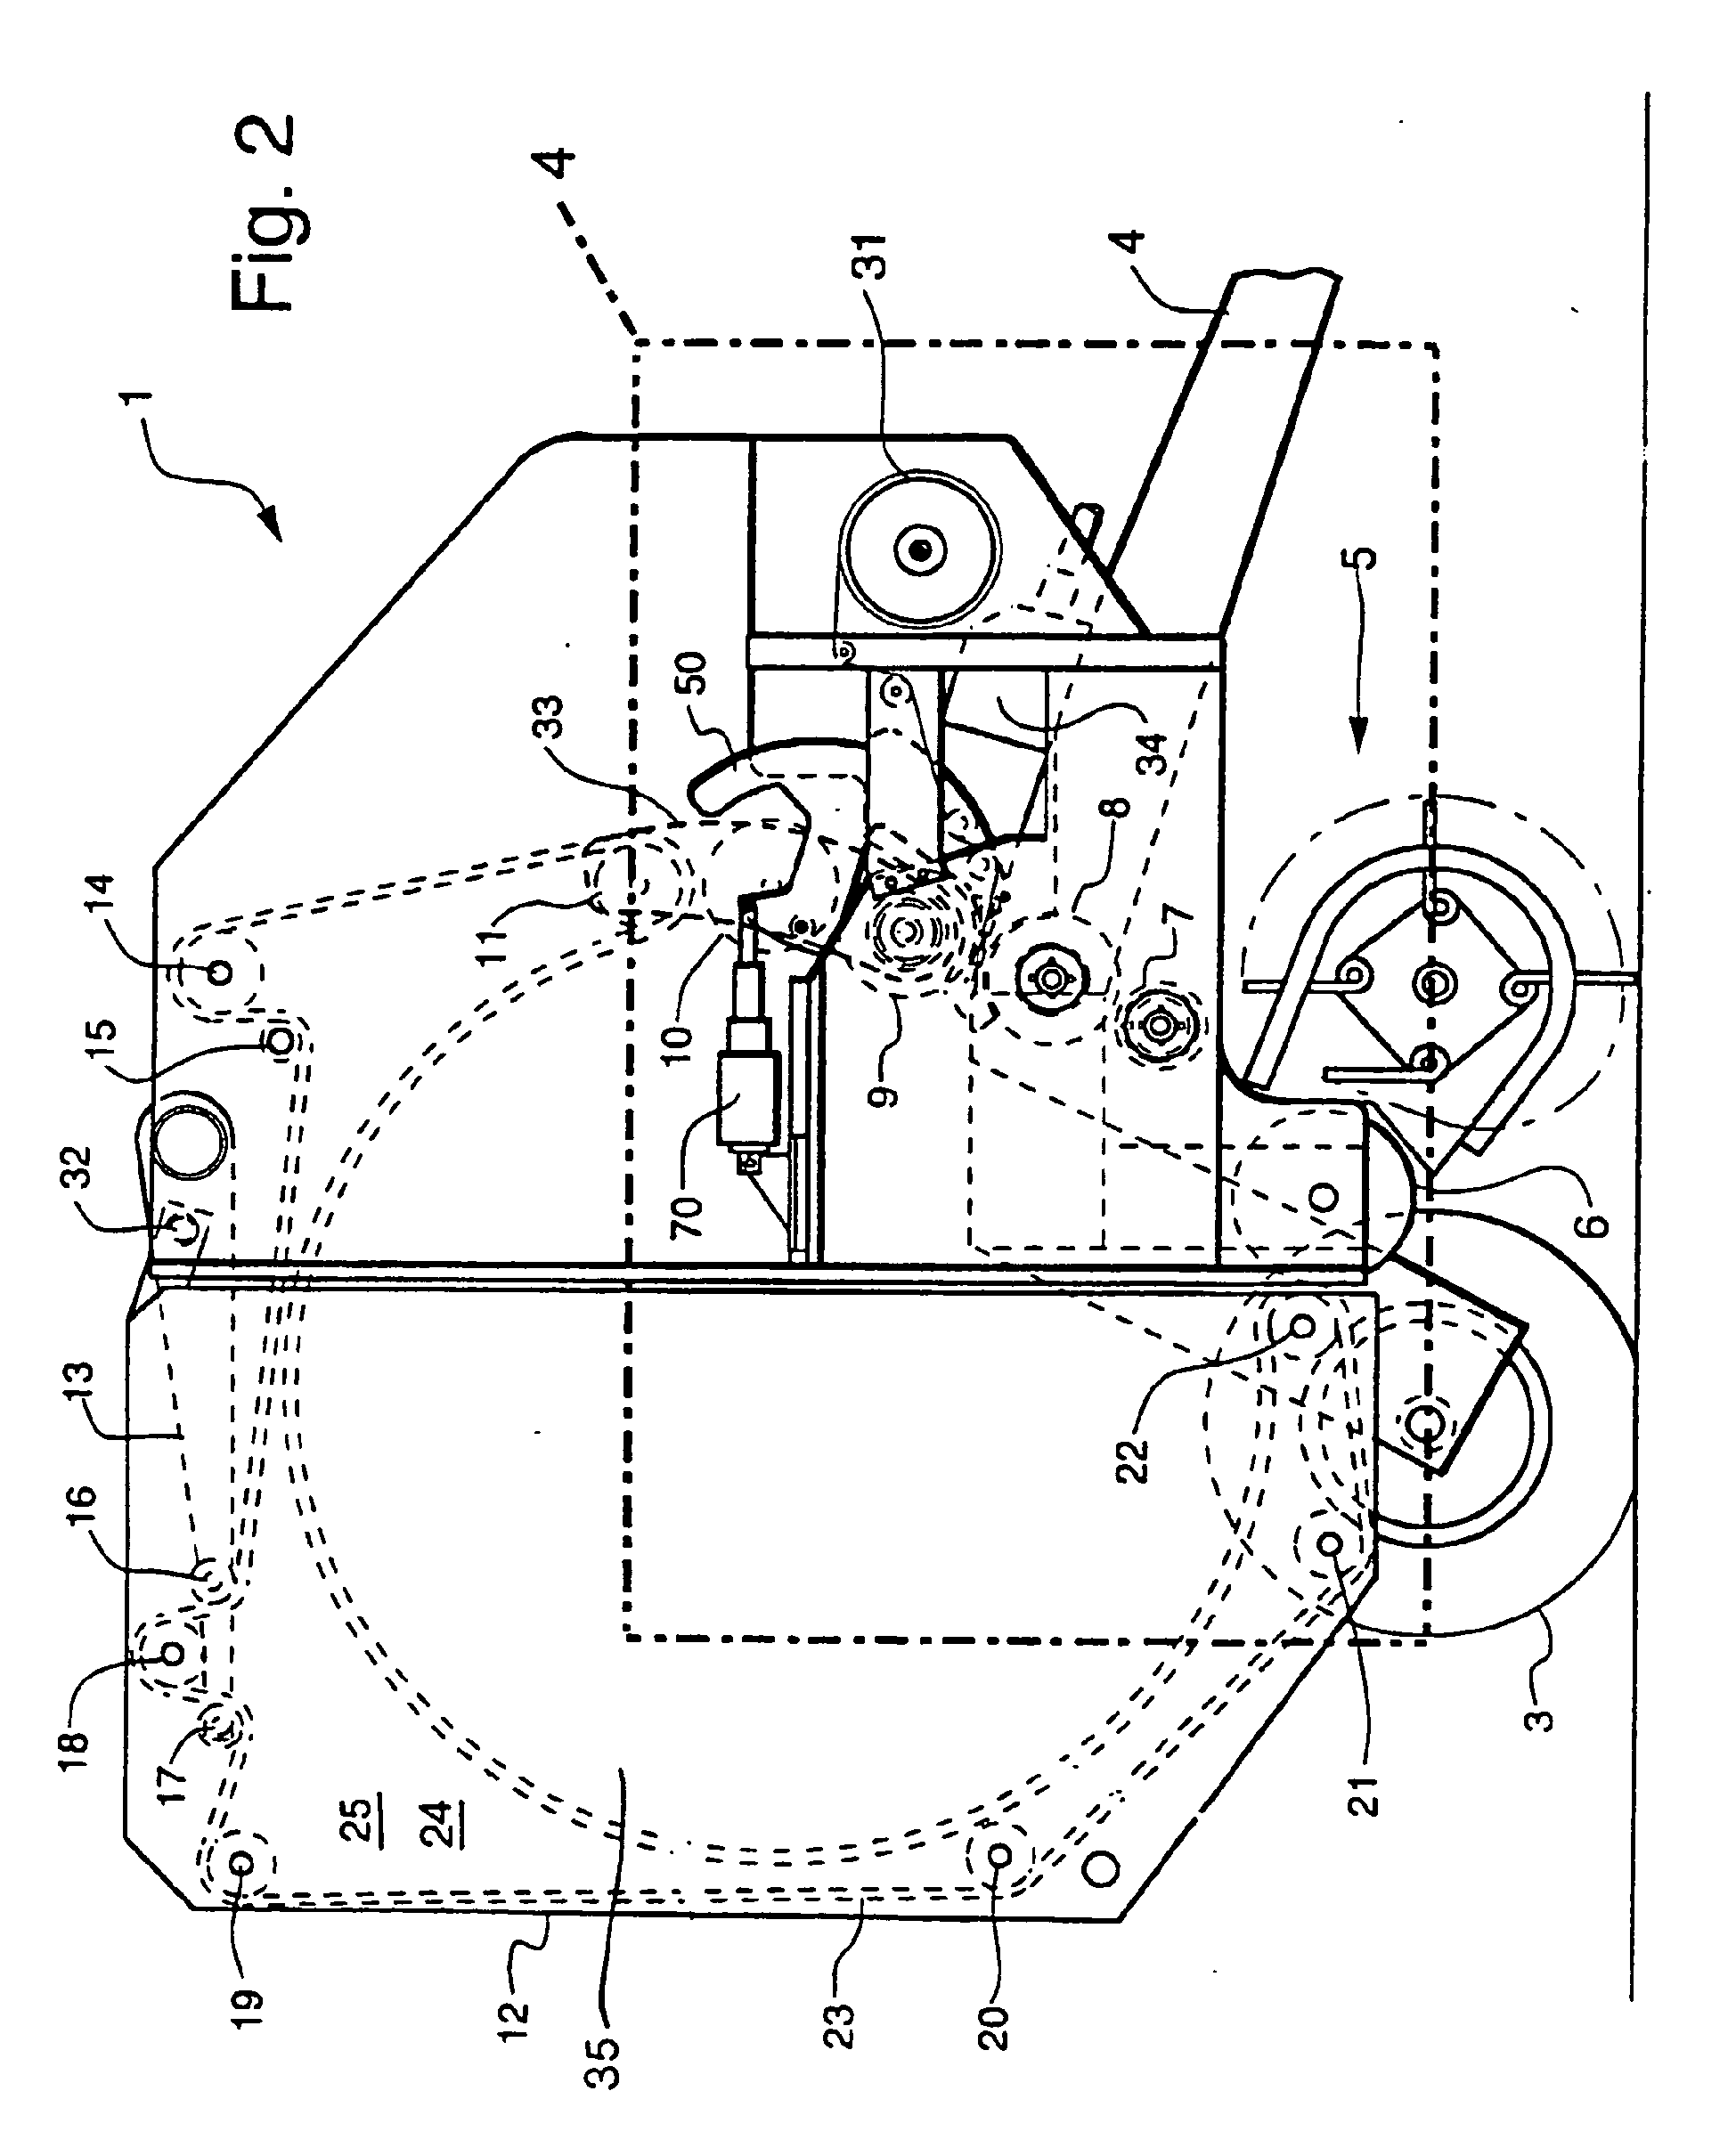 Over the edge net wrap dispensing system for a round baler - Patent